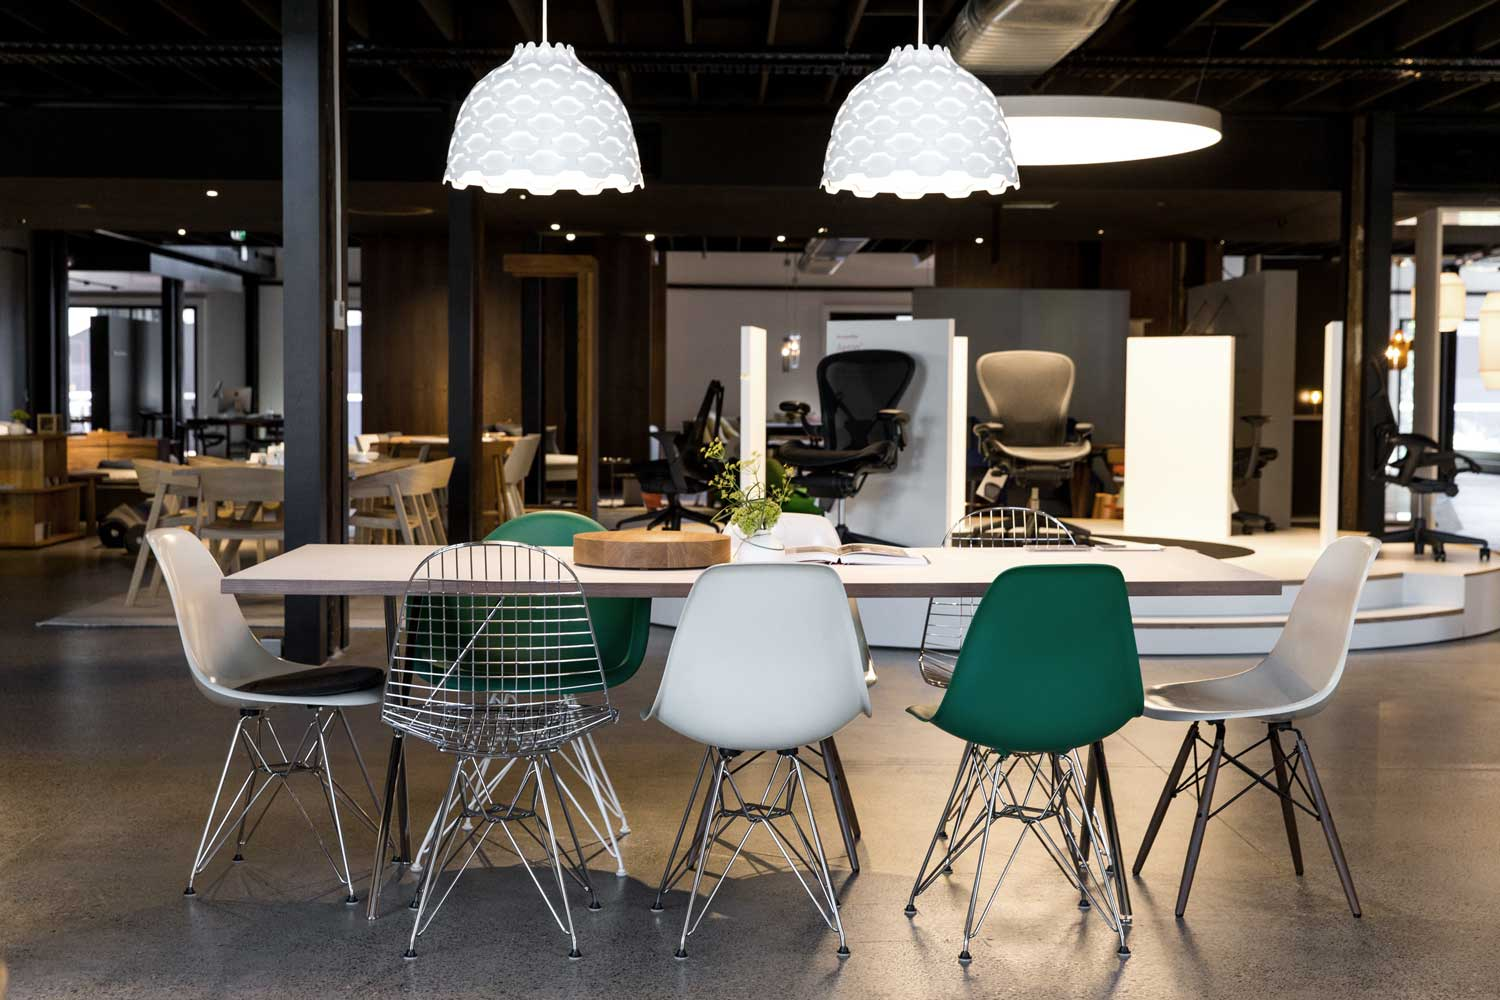 living edge lighting. on tuesday 10th february, australia\u0027s leading furniture supplier living edge welcomed high profile international and domestic guests into it\u0027s new state-of lighting s